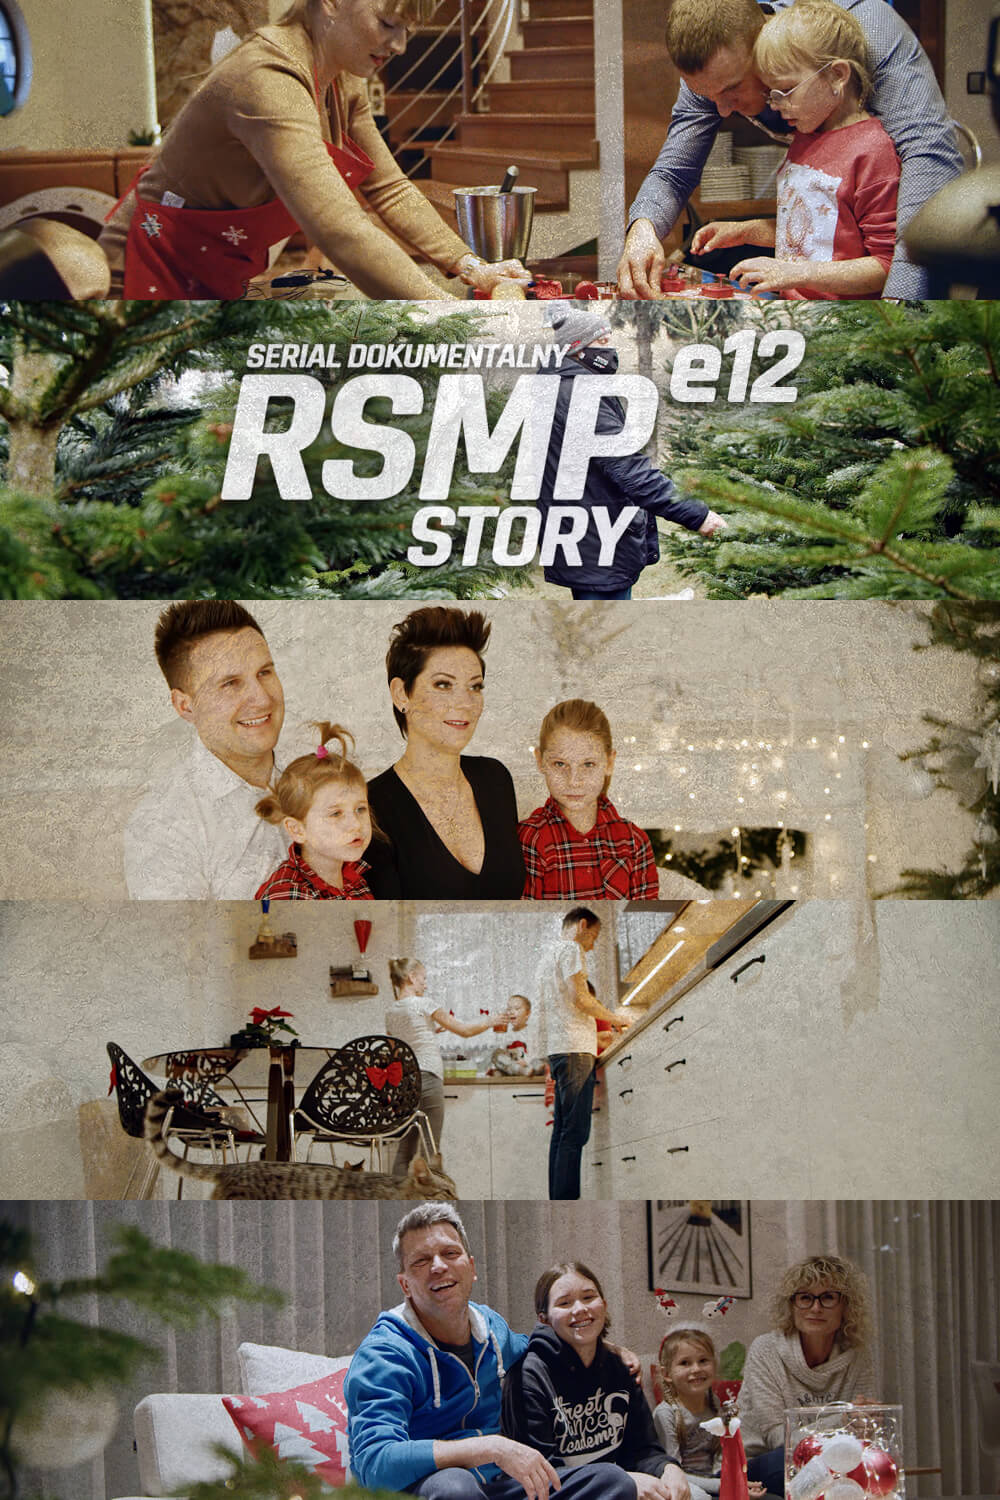 Poster - RSMP STORY s01e12